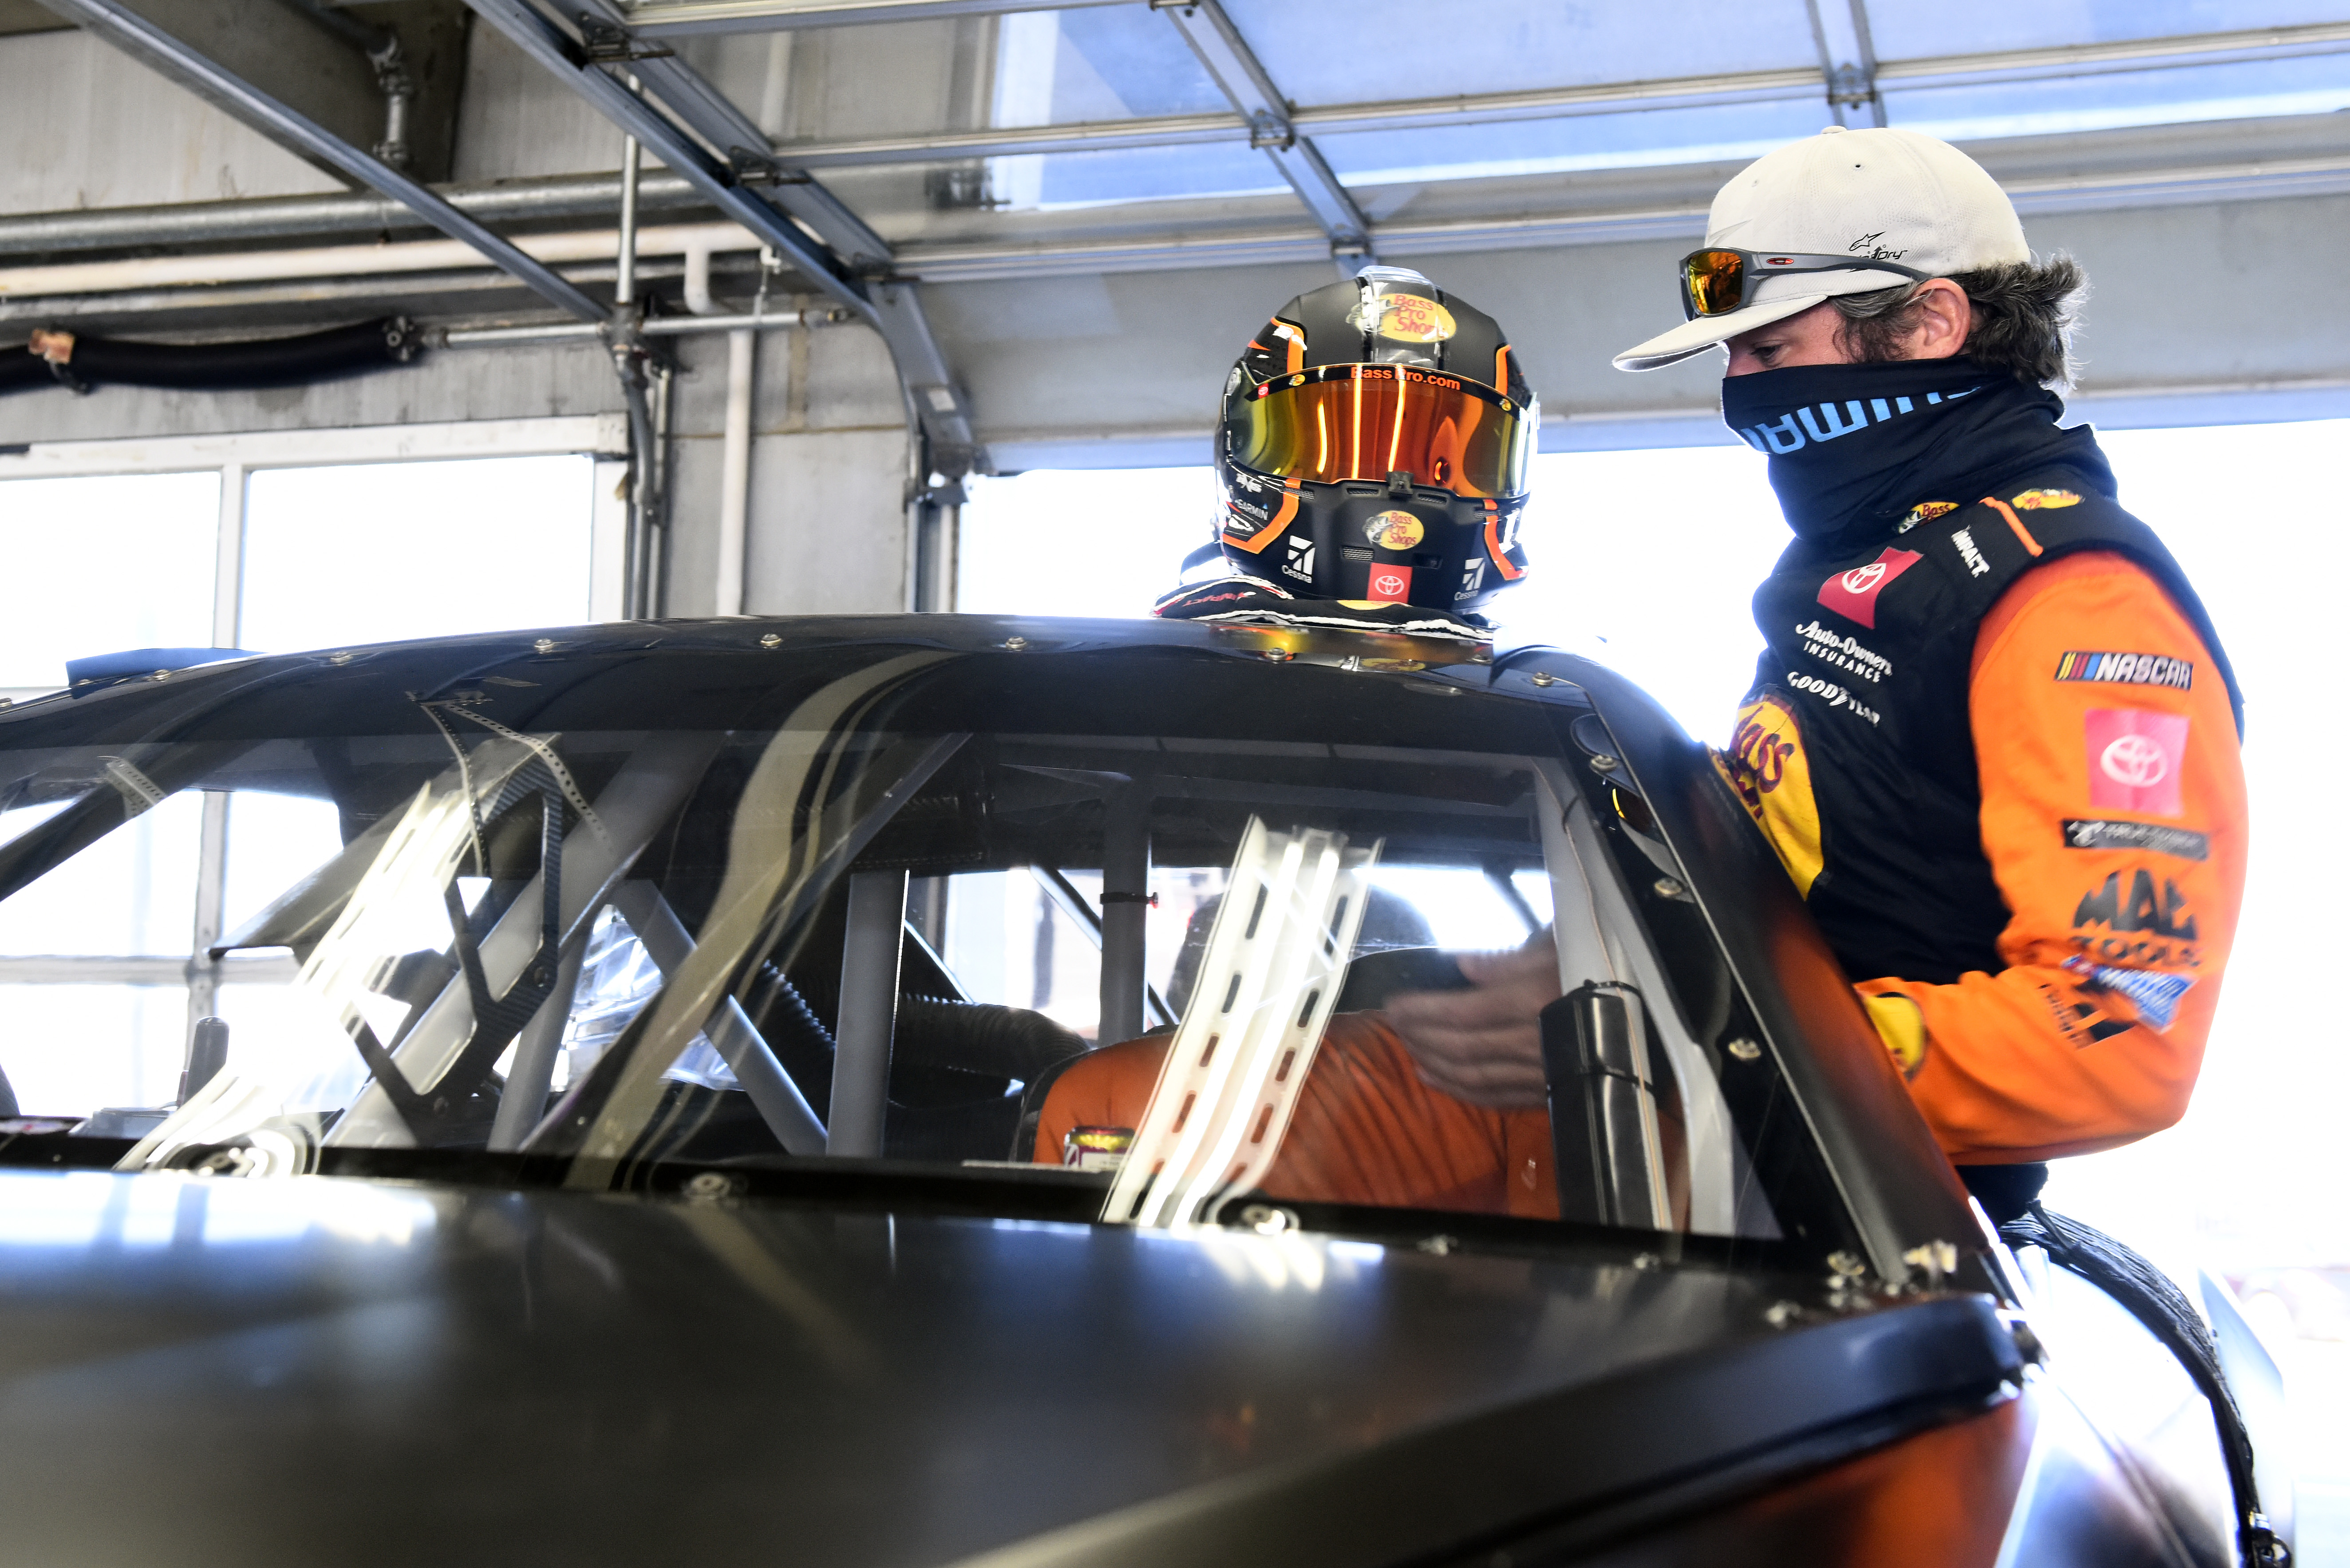 CONCORD, NORTH CAROLINA – NOVEMBER 16: Martin Truex Jr. climbs into the NASCAR Next Gen car during the NASCAR Cup Series test at Charlotte Motor Speedway on November 16, 2020 in Concord, North Carolina. (Photo by Jared C. Tilton/Getty Images) | Getty Images